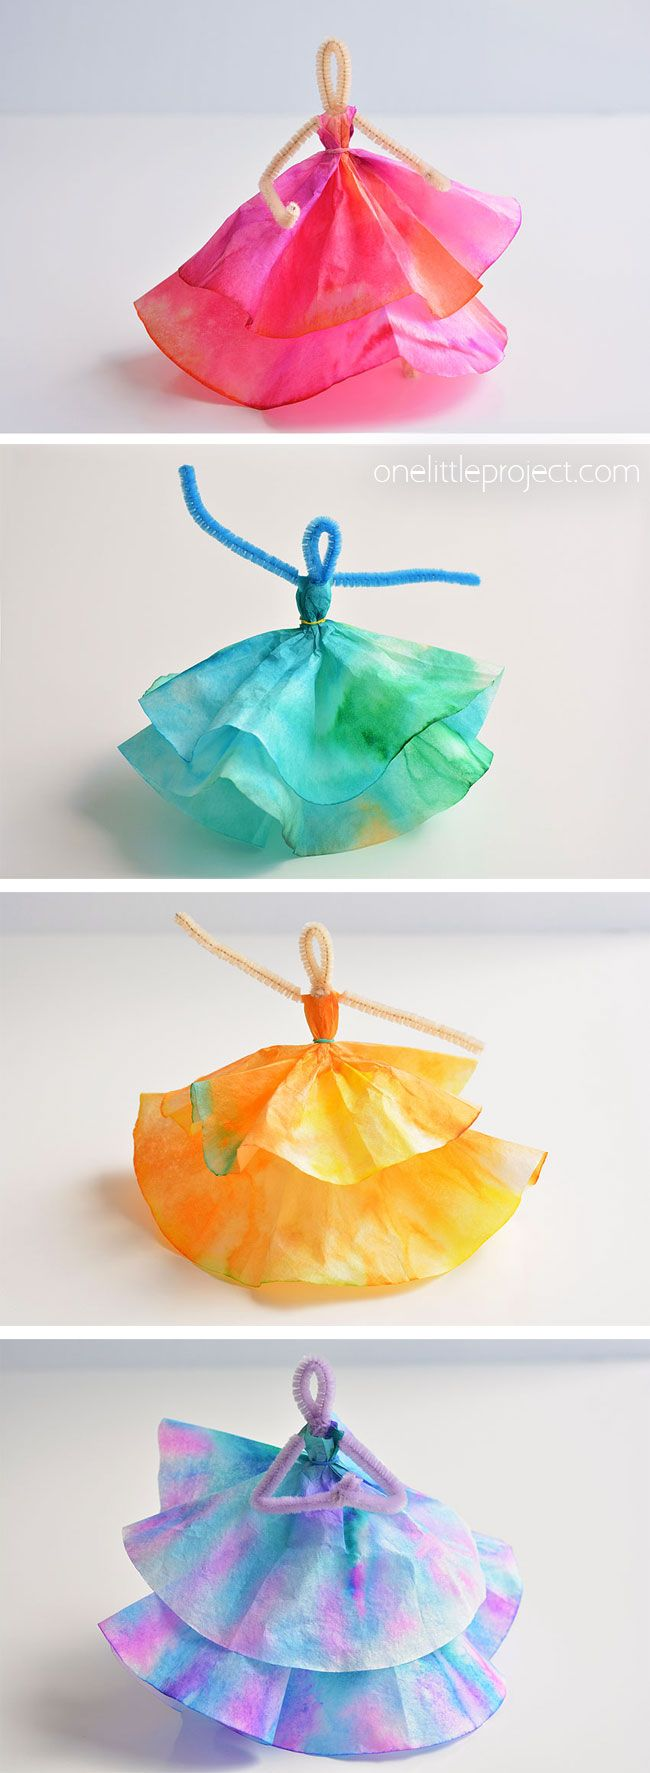 How to Make Coffee Filter Dancers